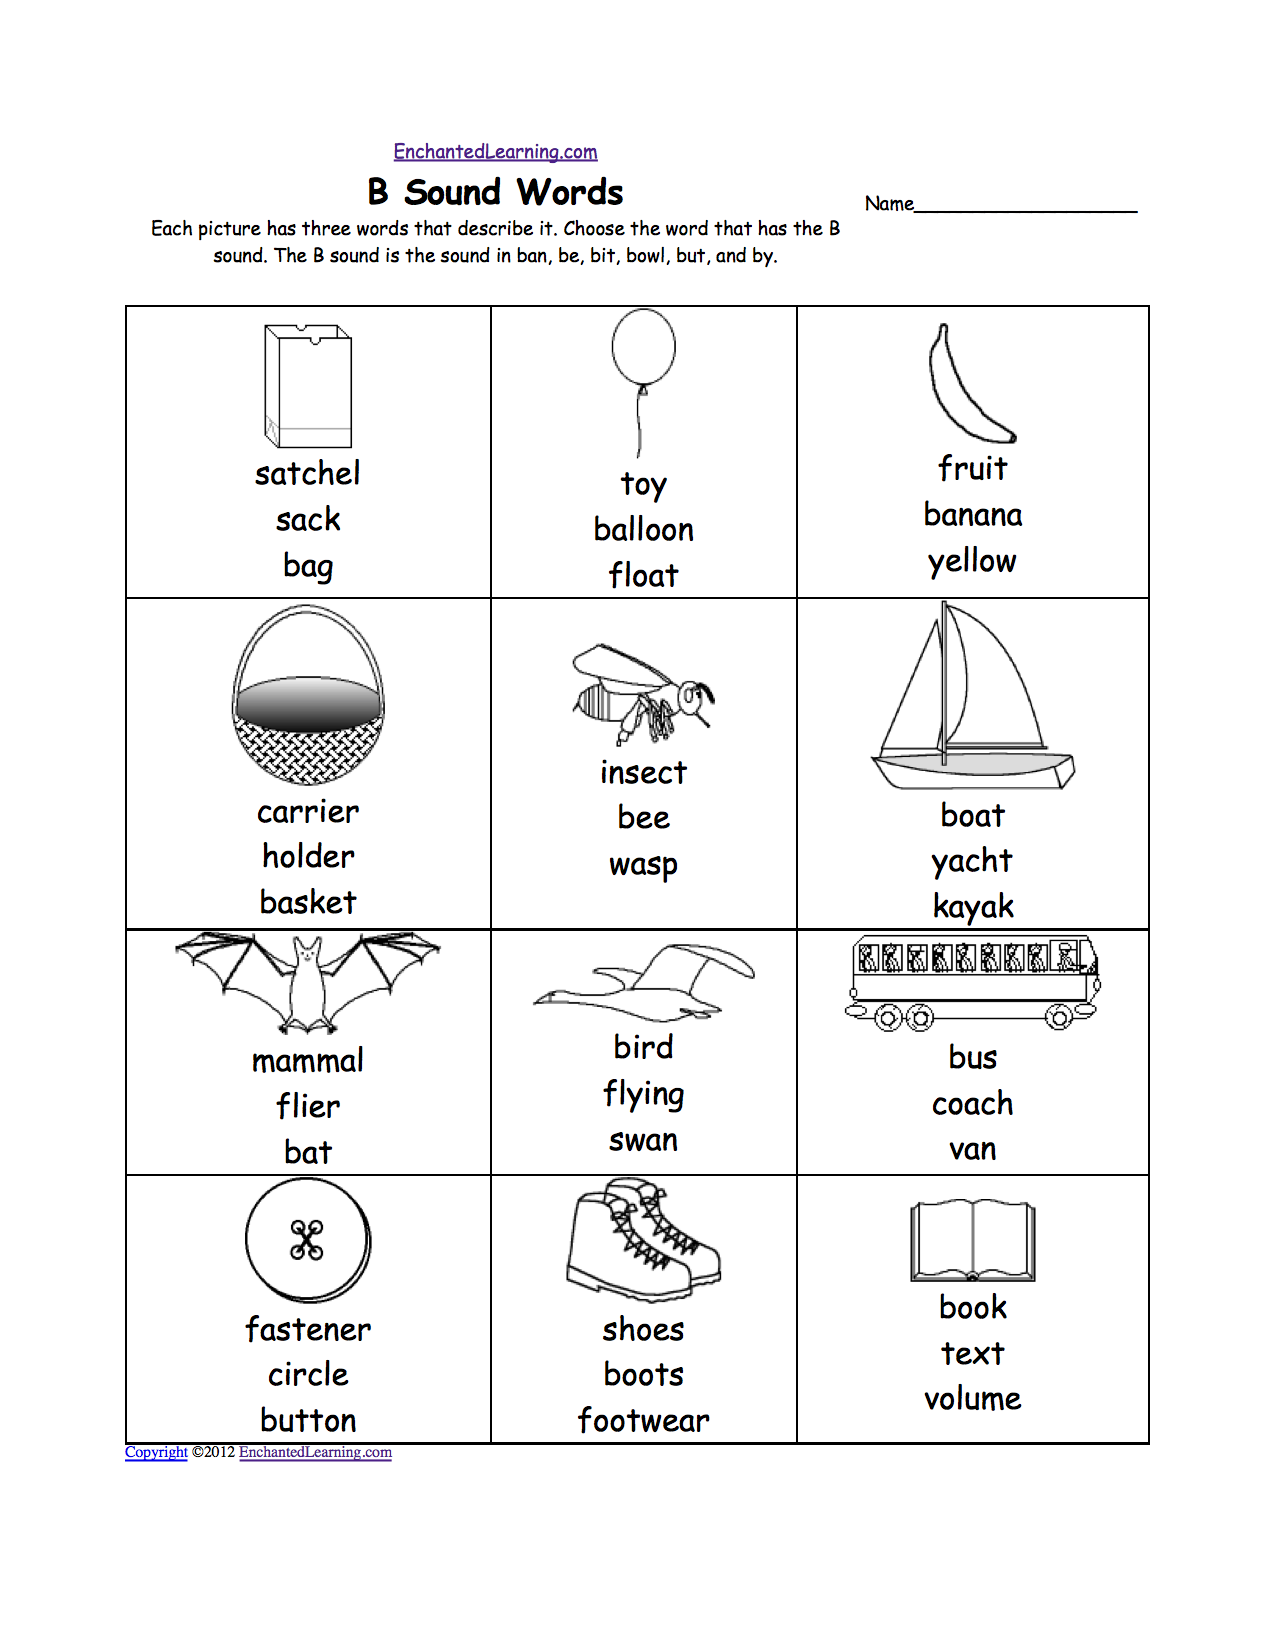 Aldiablosus  Splendid Phonics Worksheets Multiple Choice Worksheets To Print  With Likable Quotbquot Sound Phonics Worksheet Multiple Choice Each Picture Has Three Words That Describe It Choose The Word That Has A Quotbquot Sound The Quotbquot Sound Is The Sound  With Lovely Regular Plural Nouns Worksheet Also Common And Proper Nouns Worksheet Rd Grade In Addition Literary Terms Worksheets And Pronouns Worksheets Th Grade As Well As Blank United States Map Worksheet Additionally Kindergarten Math Review Worksheets From Enchantedlearningcom With Aldiablosus  Likable Phonics Worksheets Multiple Choice Worksheets To Print  With Lovely Quotbquot Sound Phonics Worksheet Multiple Choice Each Picture Has Three Words That Describe It Choose The Word That Has A Quotbquot Sound The Quotbquot Sound Is The Sound  And Splendid Regular Plural Nouns Worksheet Also Common And Proper Nouns Worksheet Rd Grade In Addition Literary Terms Worksheets From Enchantedlearningcom